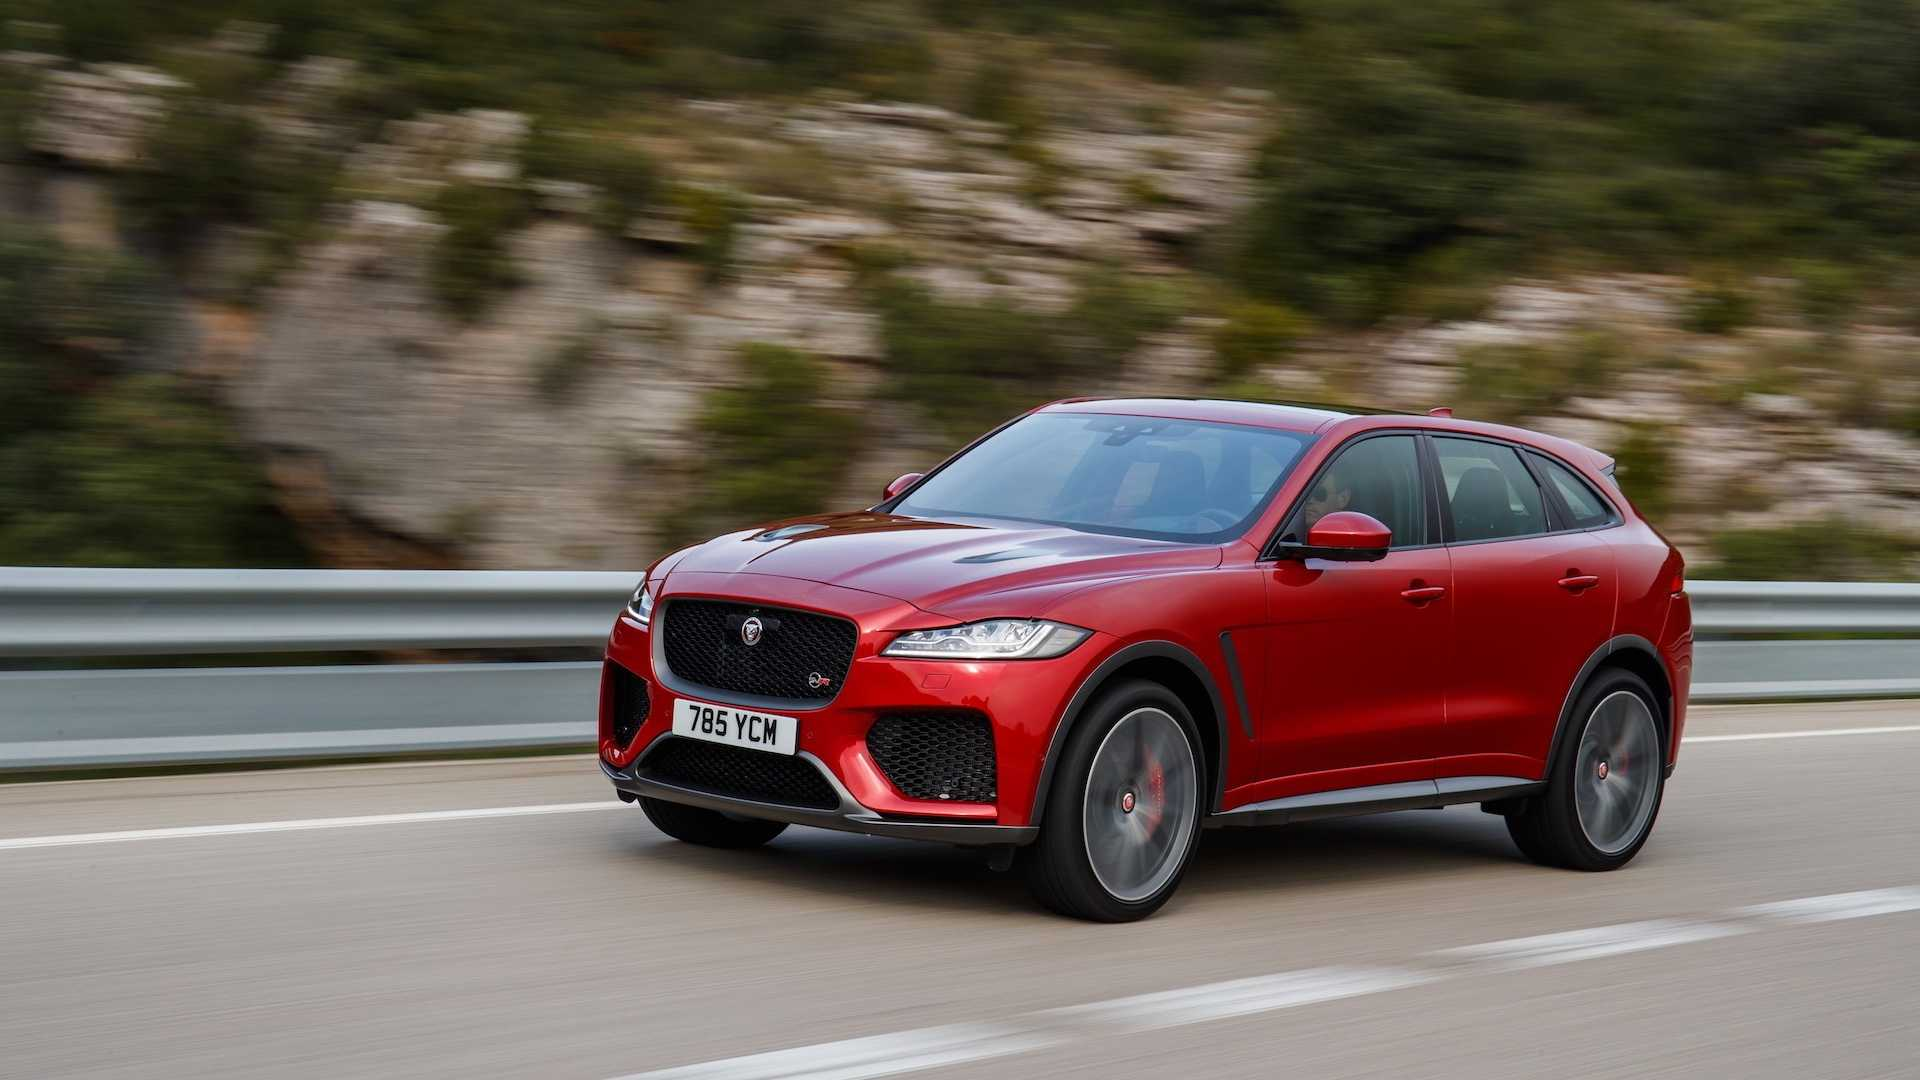 2019 Jaguar F-Pace SVR (Color: Firenze Red) Front Three-Quarter Wallpapers (6)